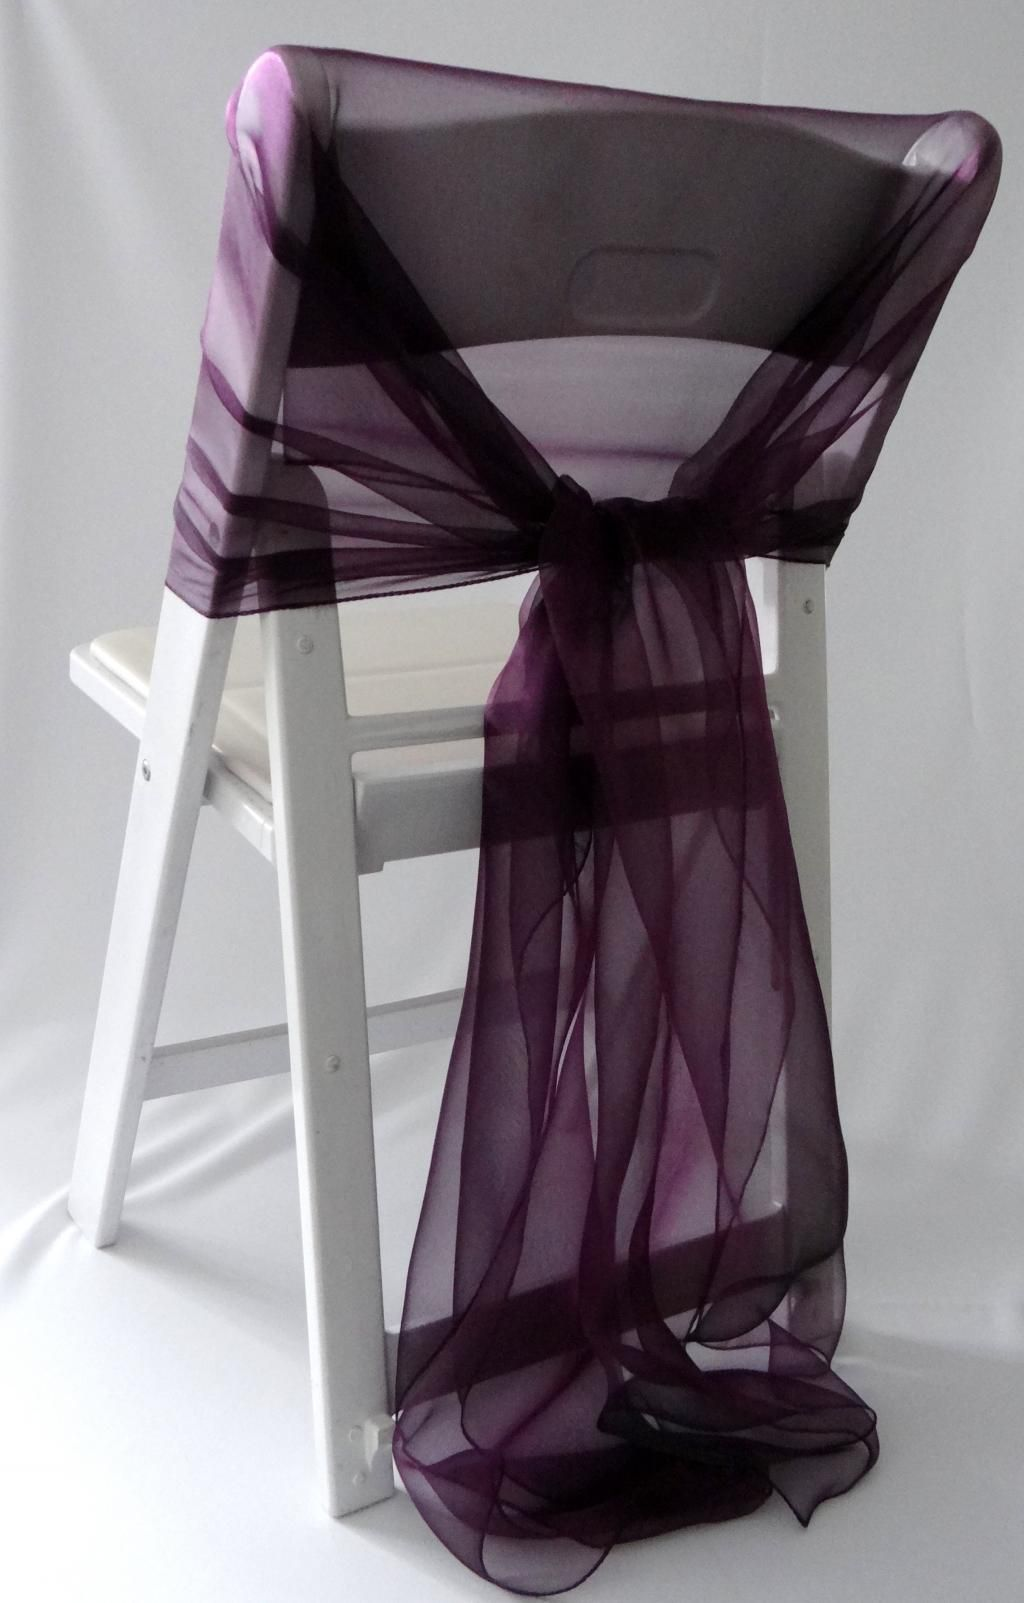 lux-diy-folding-chair-covers-with-purple-ribbons More & Encanting Folding Chair Covers Inspirations | Shelleyu0027s Wedding ...